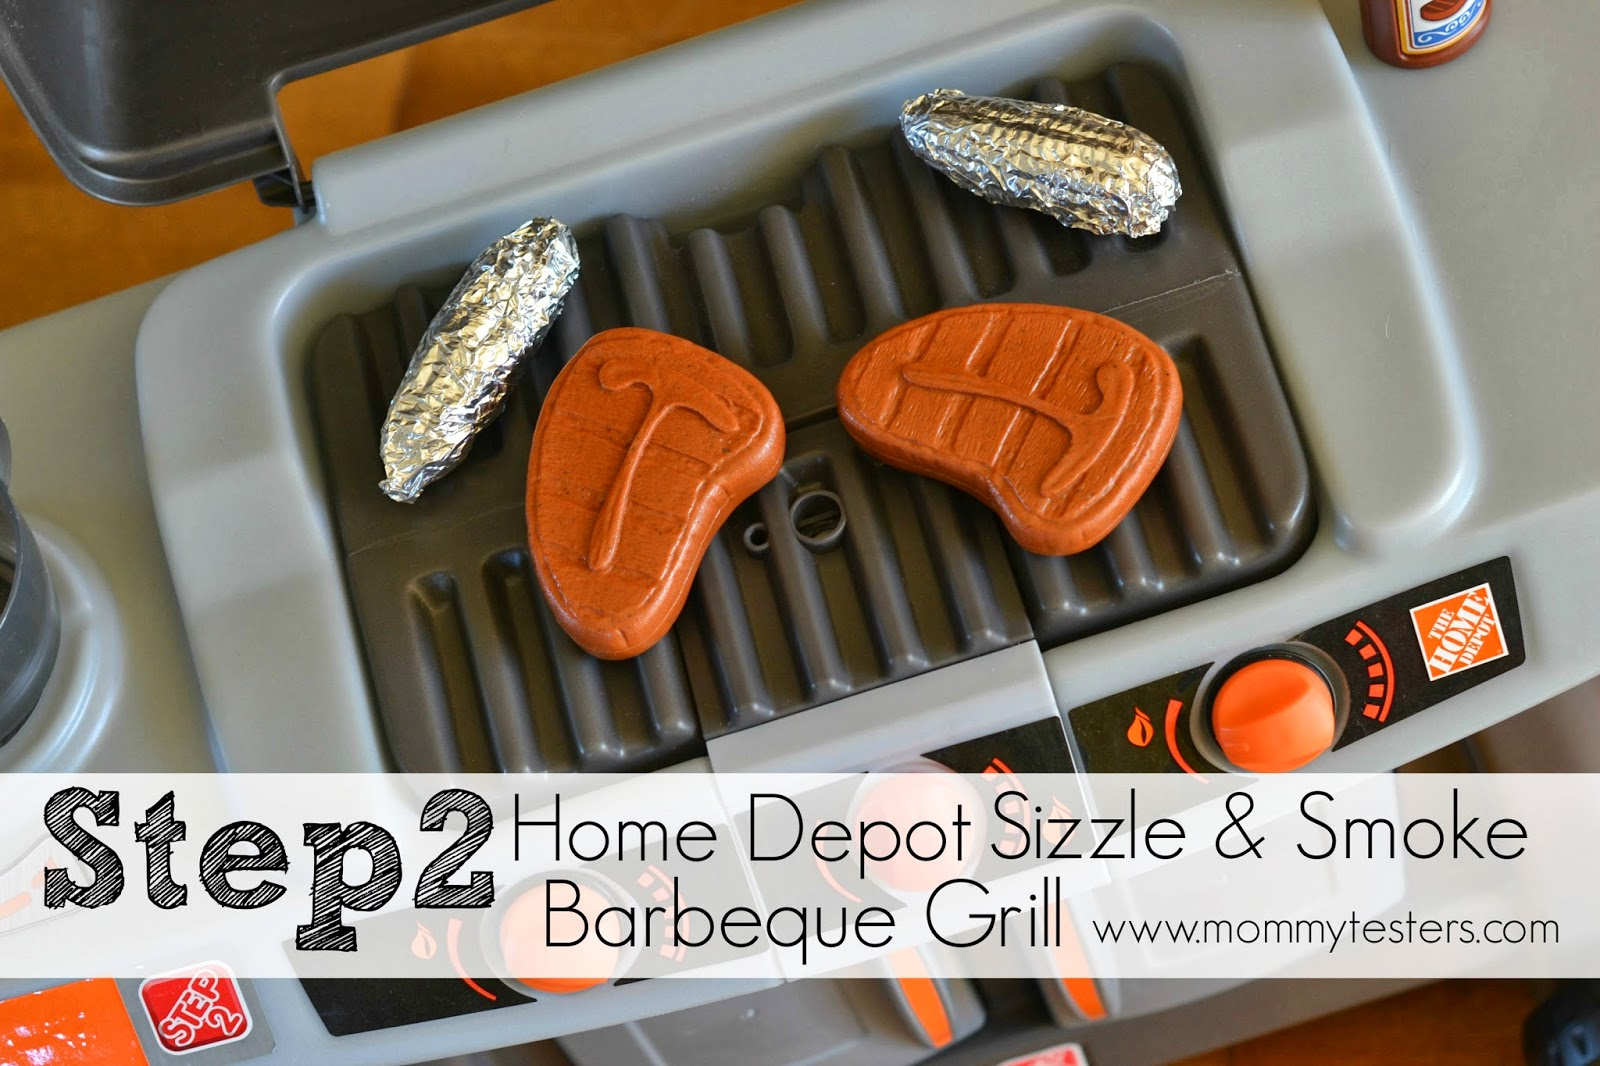 Mommy Testers, Step2 Home Depot Sizzle & Smoke Barbeque Grill, Best toy BBQ for kids, Best kids grill toy, Step2 Ambassador